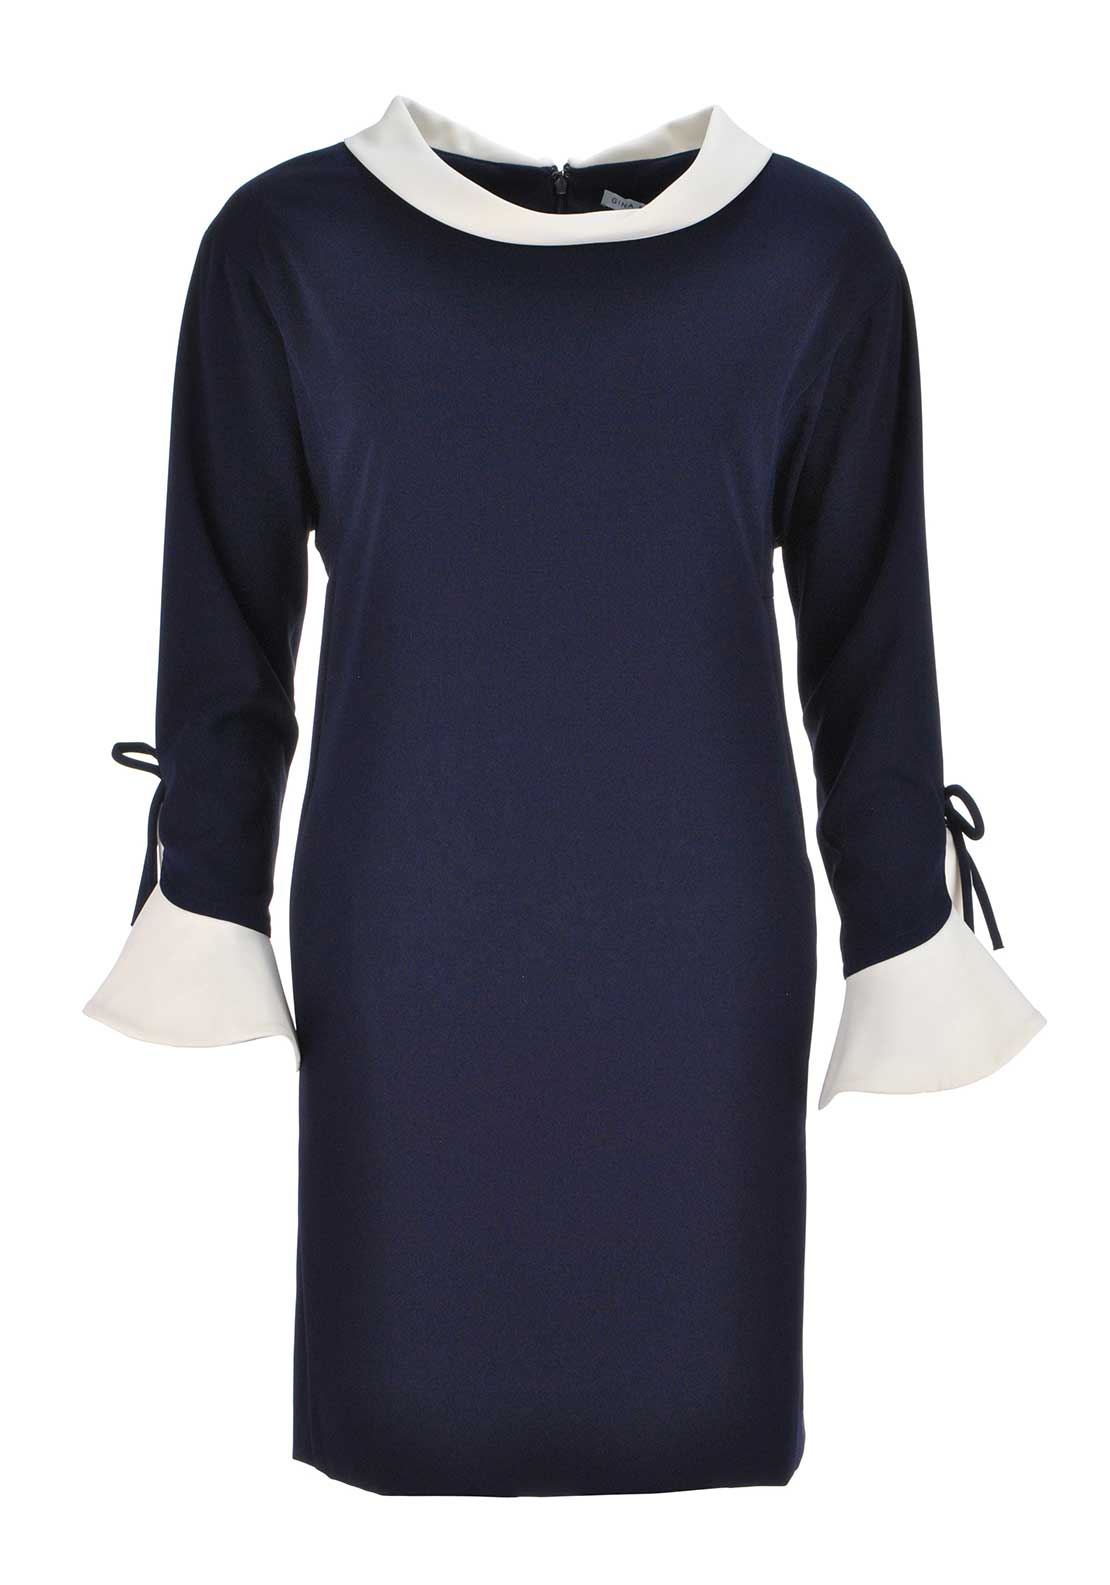 Gina Bacconi Cropped Sleeve Tunic Dress, Navy & White